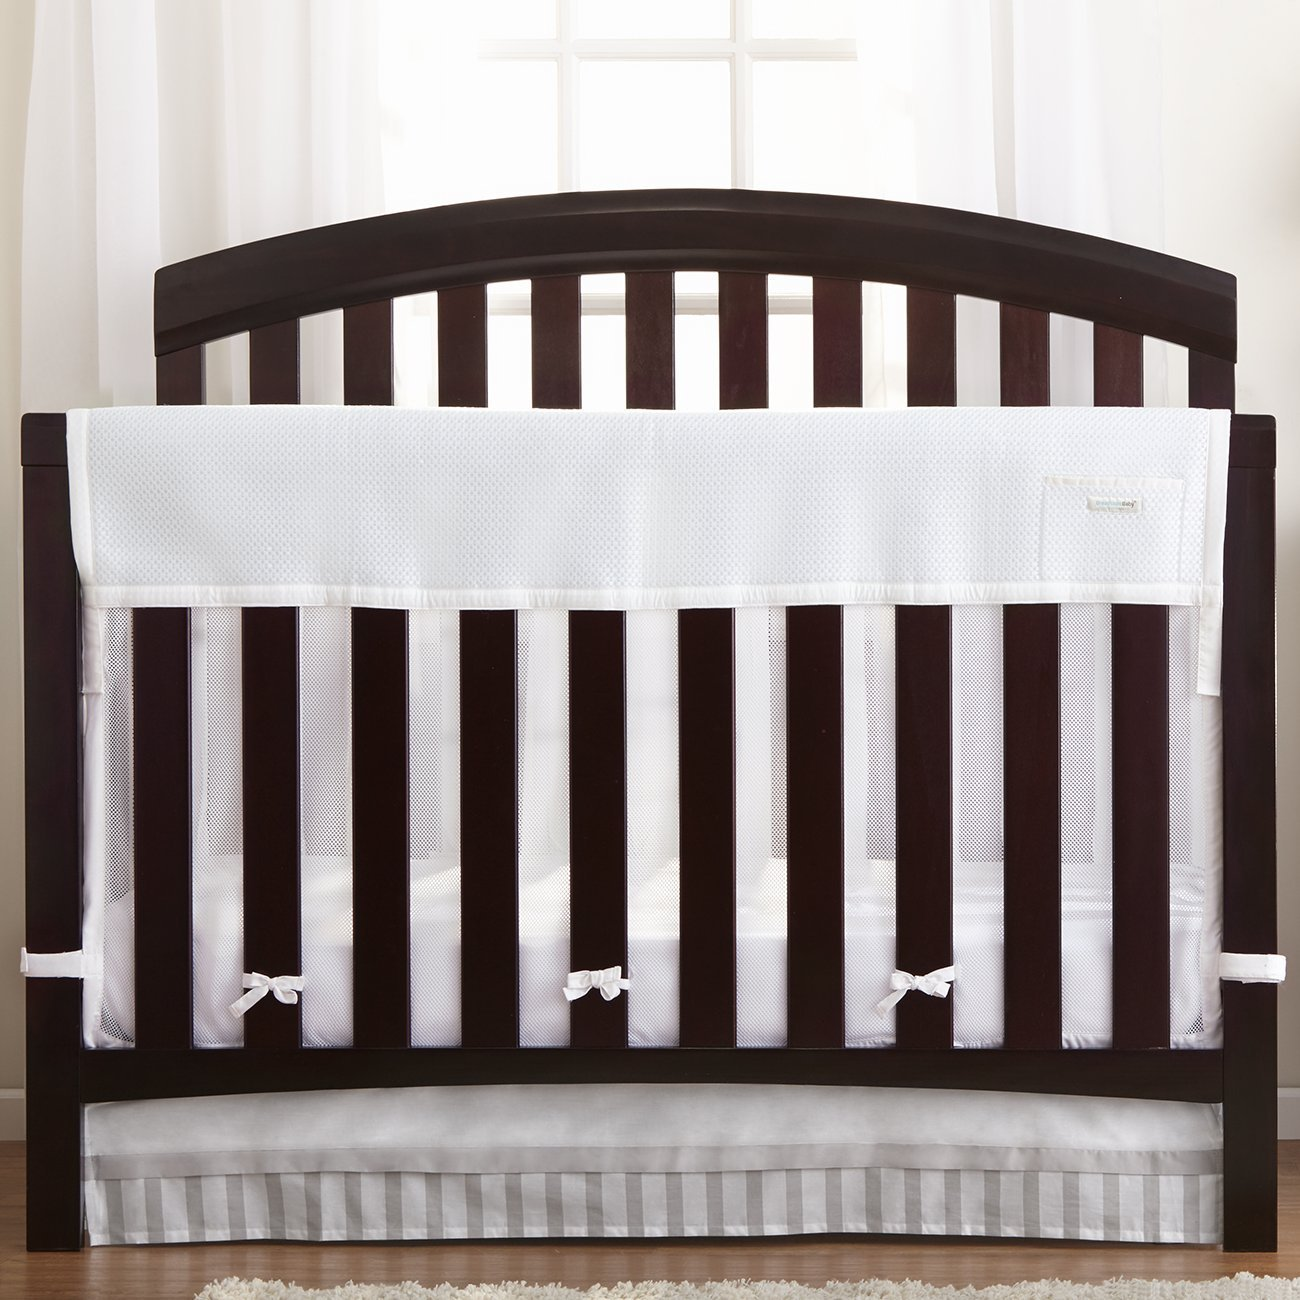 BreathableBaby | Railguard Plus Rail Cover and Liner | Helps Prevent Baby From Gnawing on Wood Rails |Helps Prevent Arms and Legs from Getting Stuck Between Crib Slats | White by BreathableBaby (Image #1)